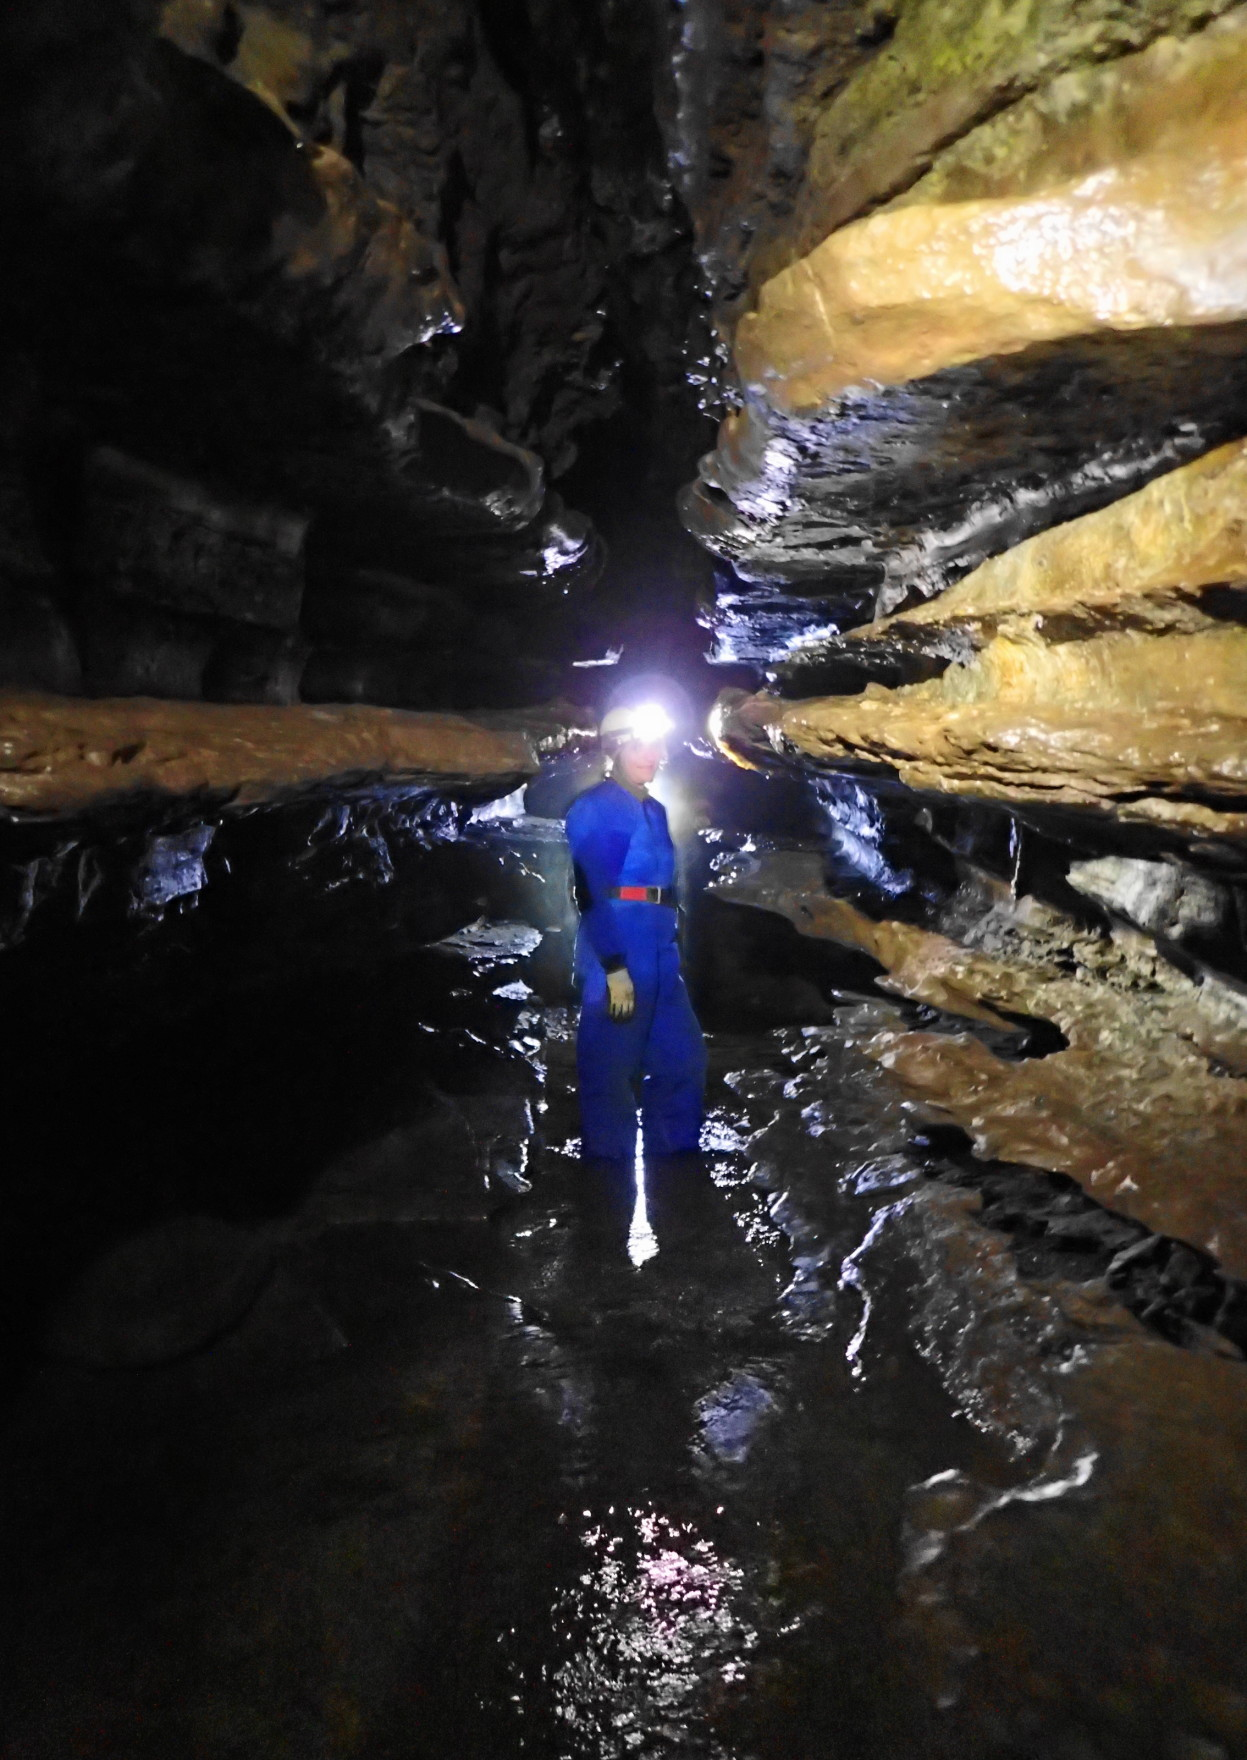 Patricia in the cave. Ogof Clogwy is known for the very pronounced shelving